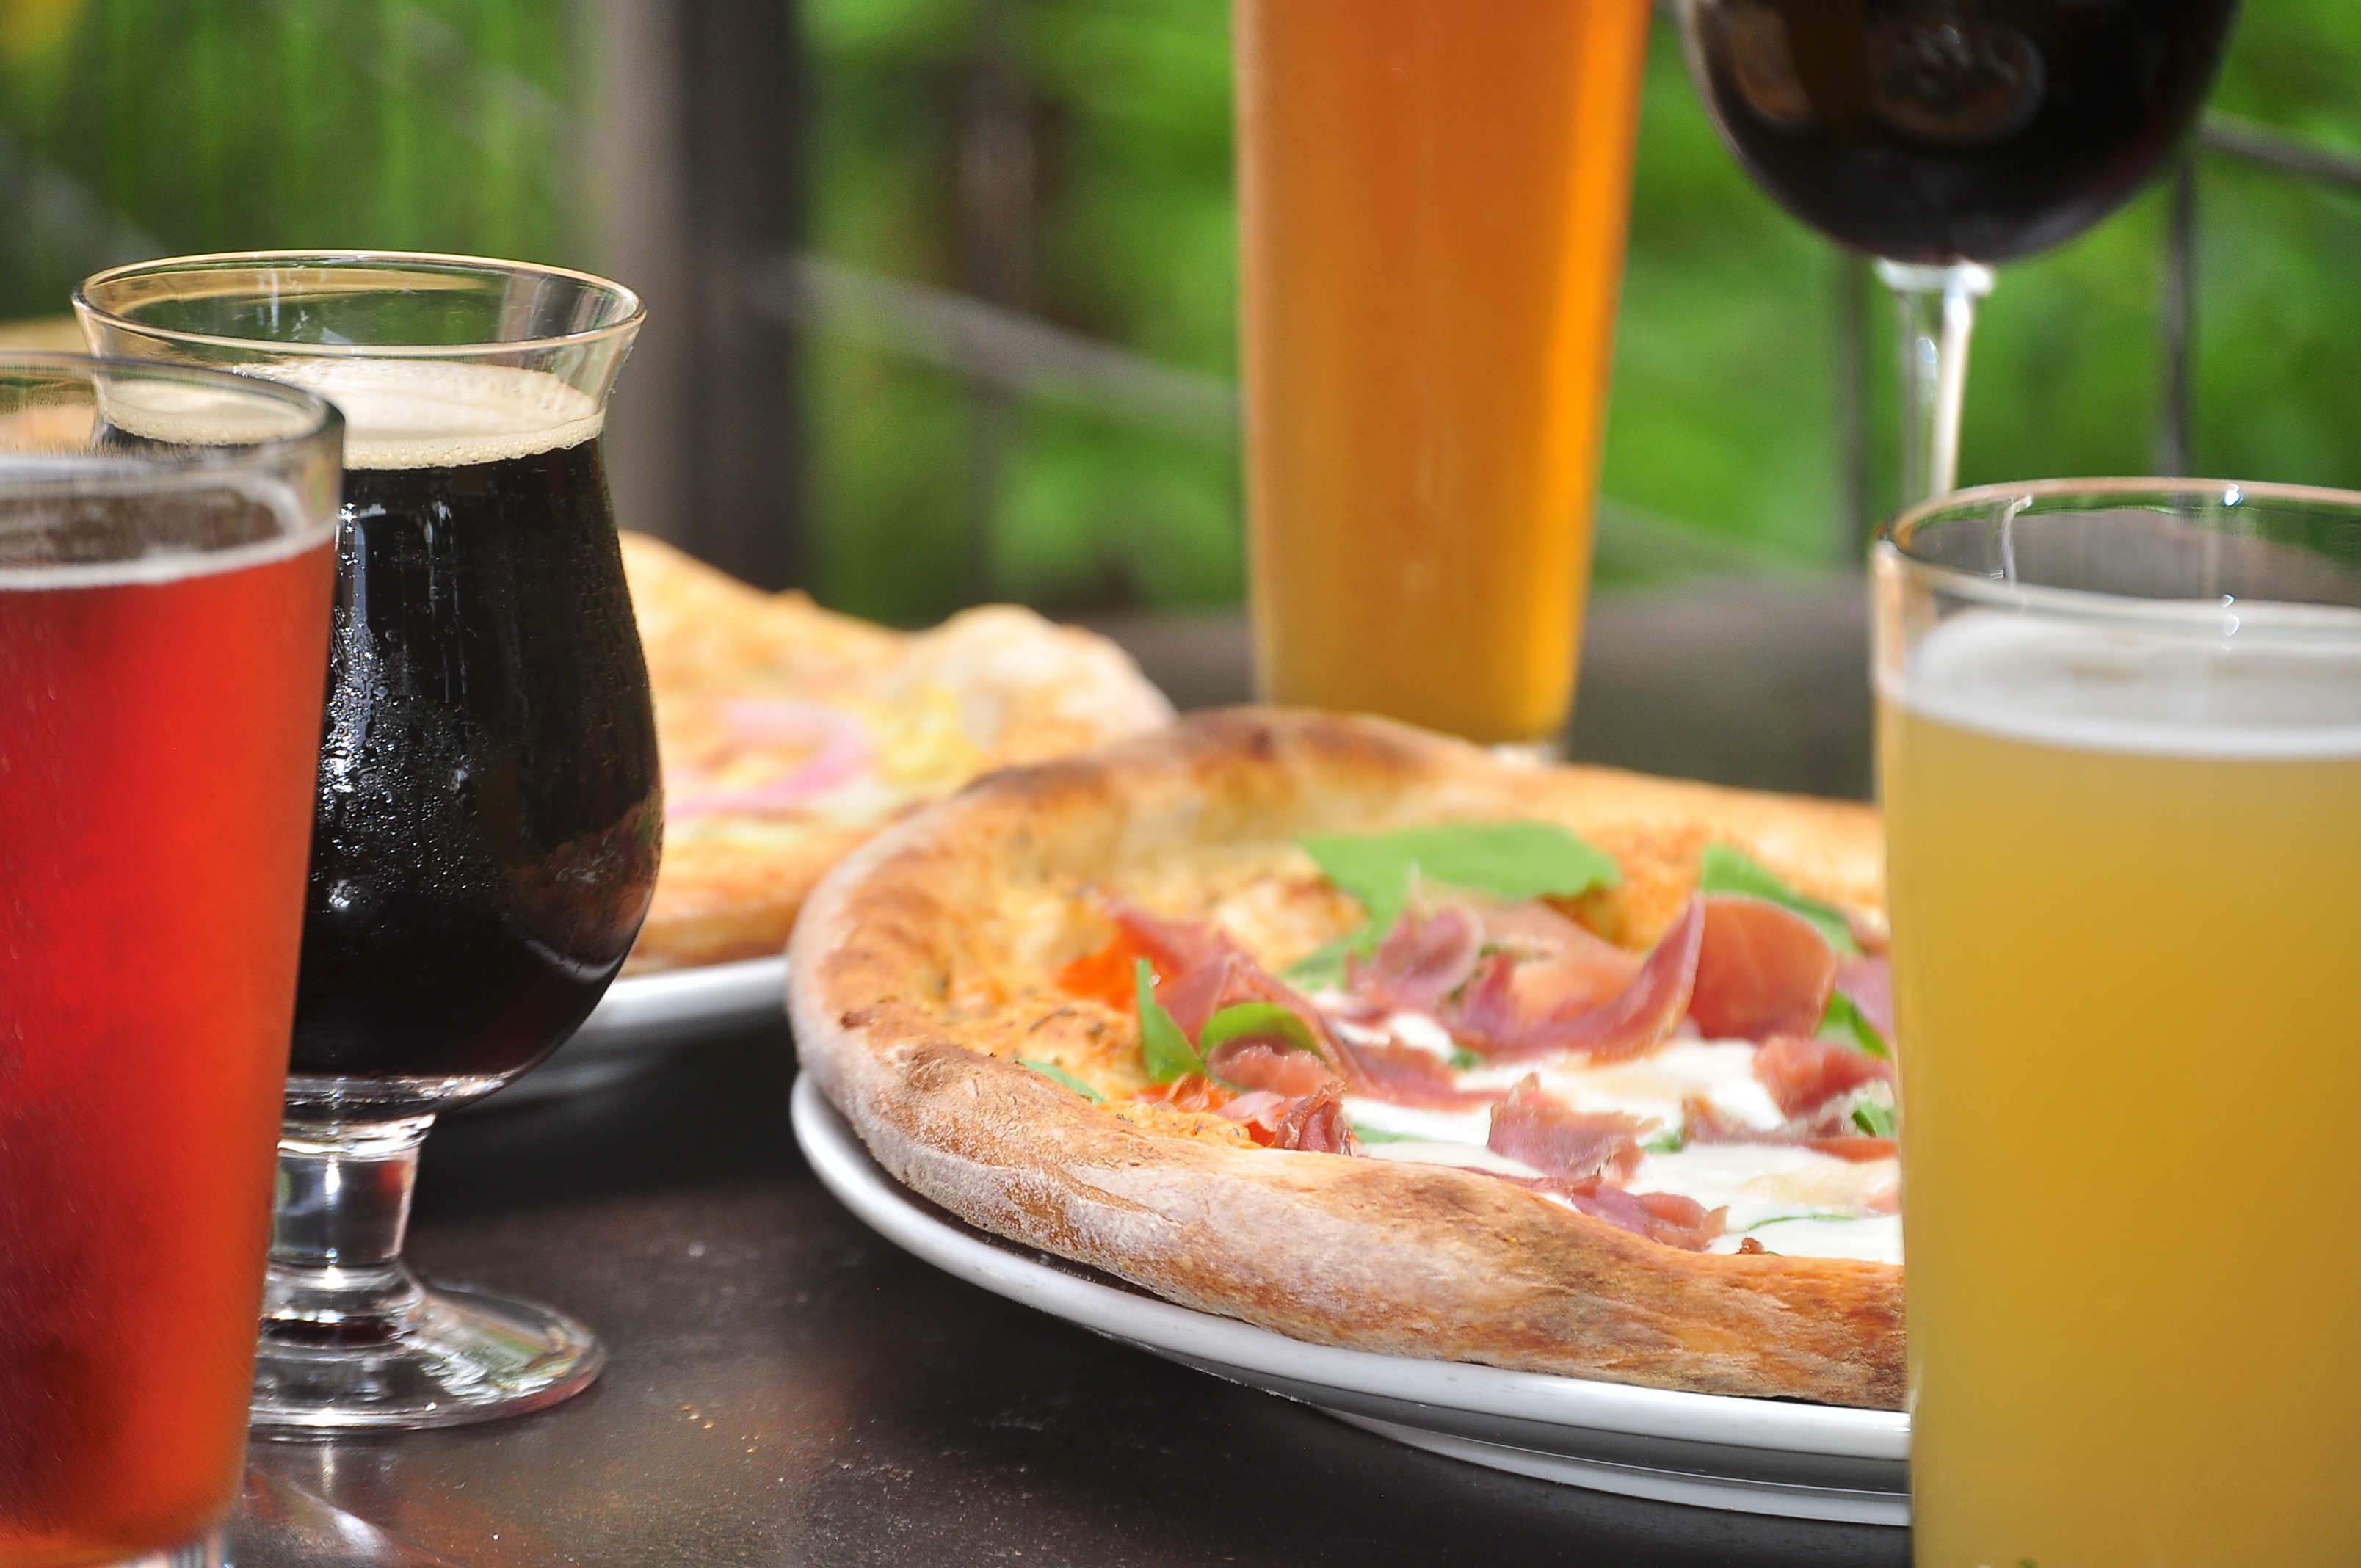 Craft Beer Wood fired pizza garden patio